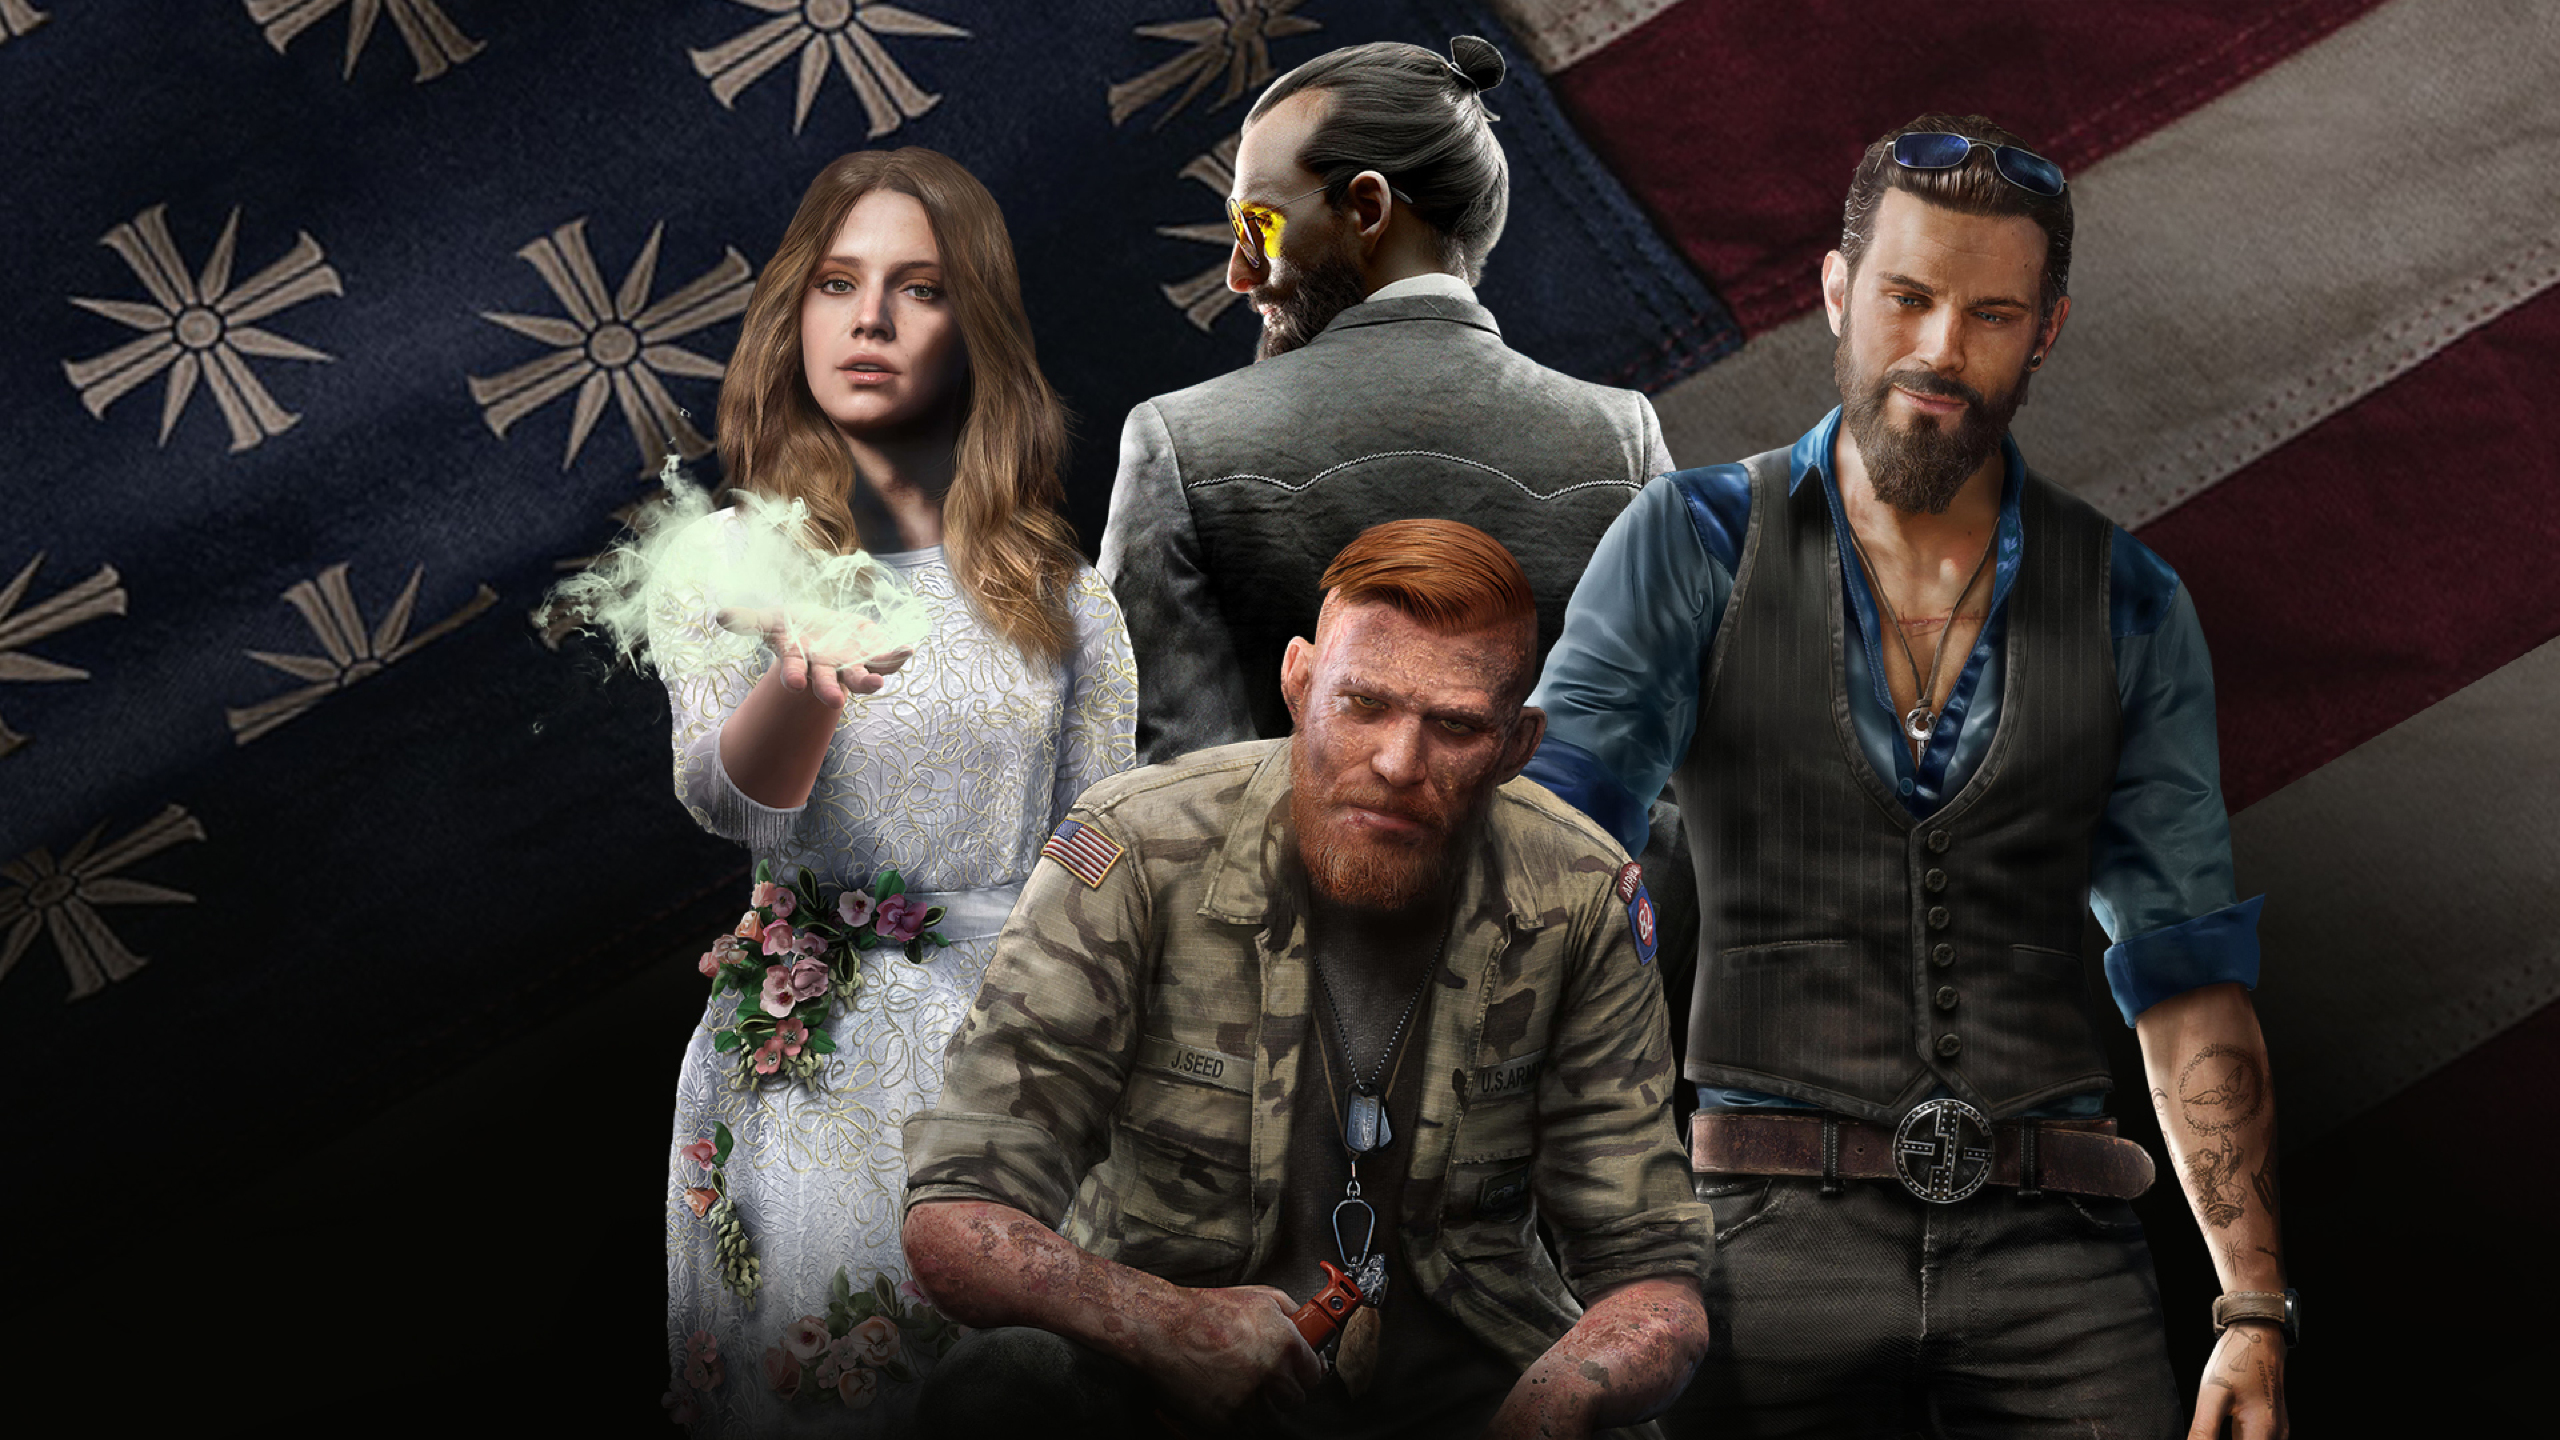 2560x1440 Far Cry 5 Seed Family 1440p Resolution Wallpaper Hd